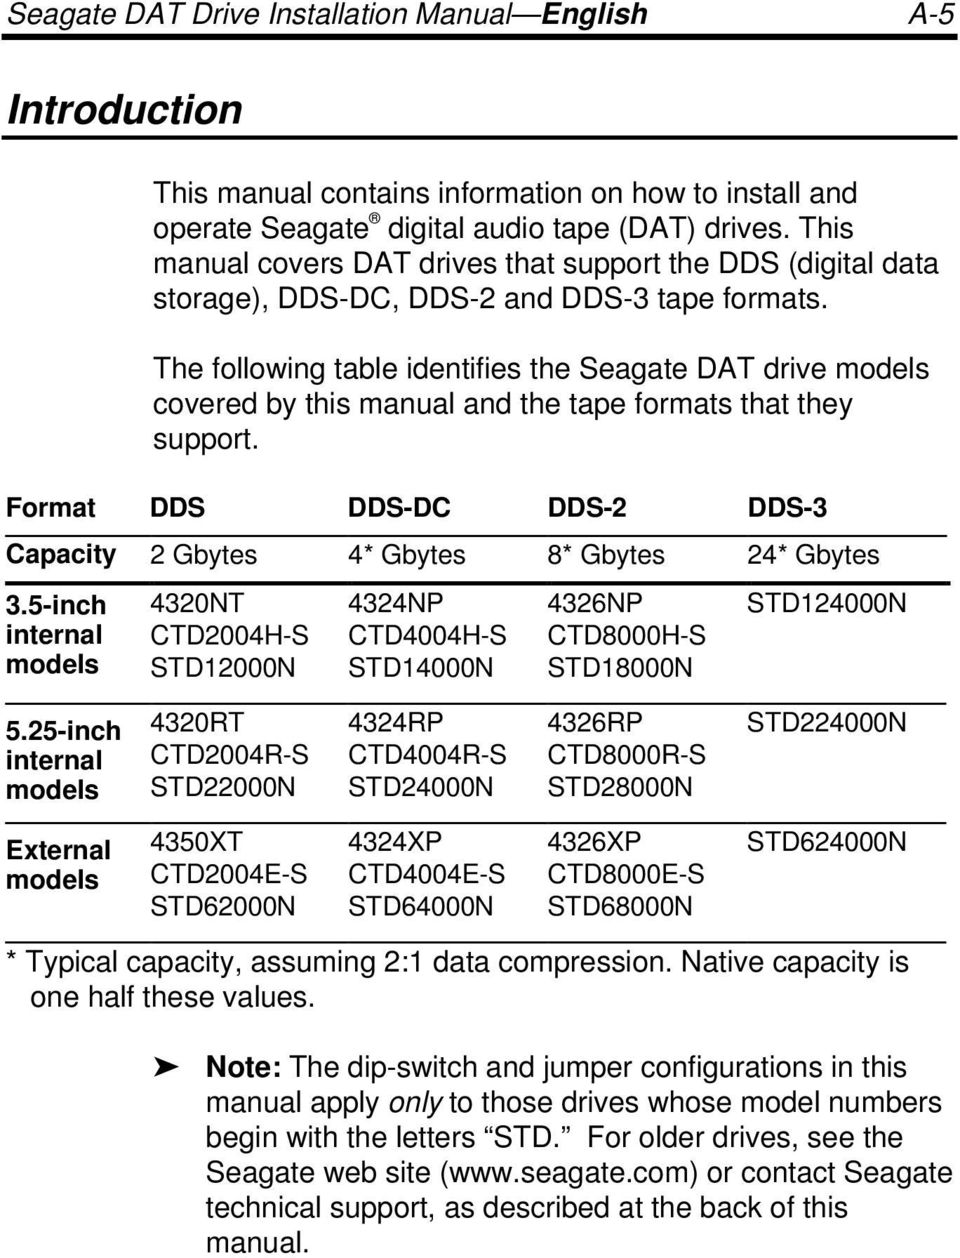 The following table identifies the Seagate DAT drive models covered by this manual and the tape formats that they support.